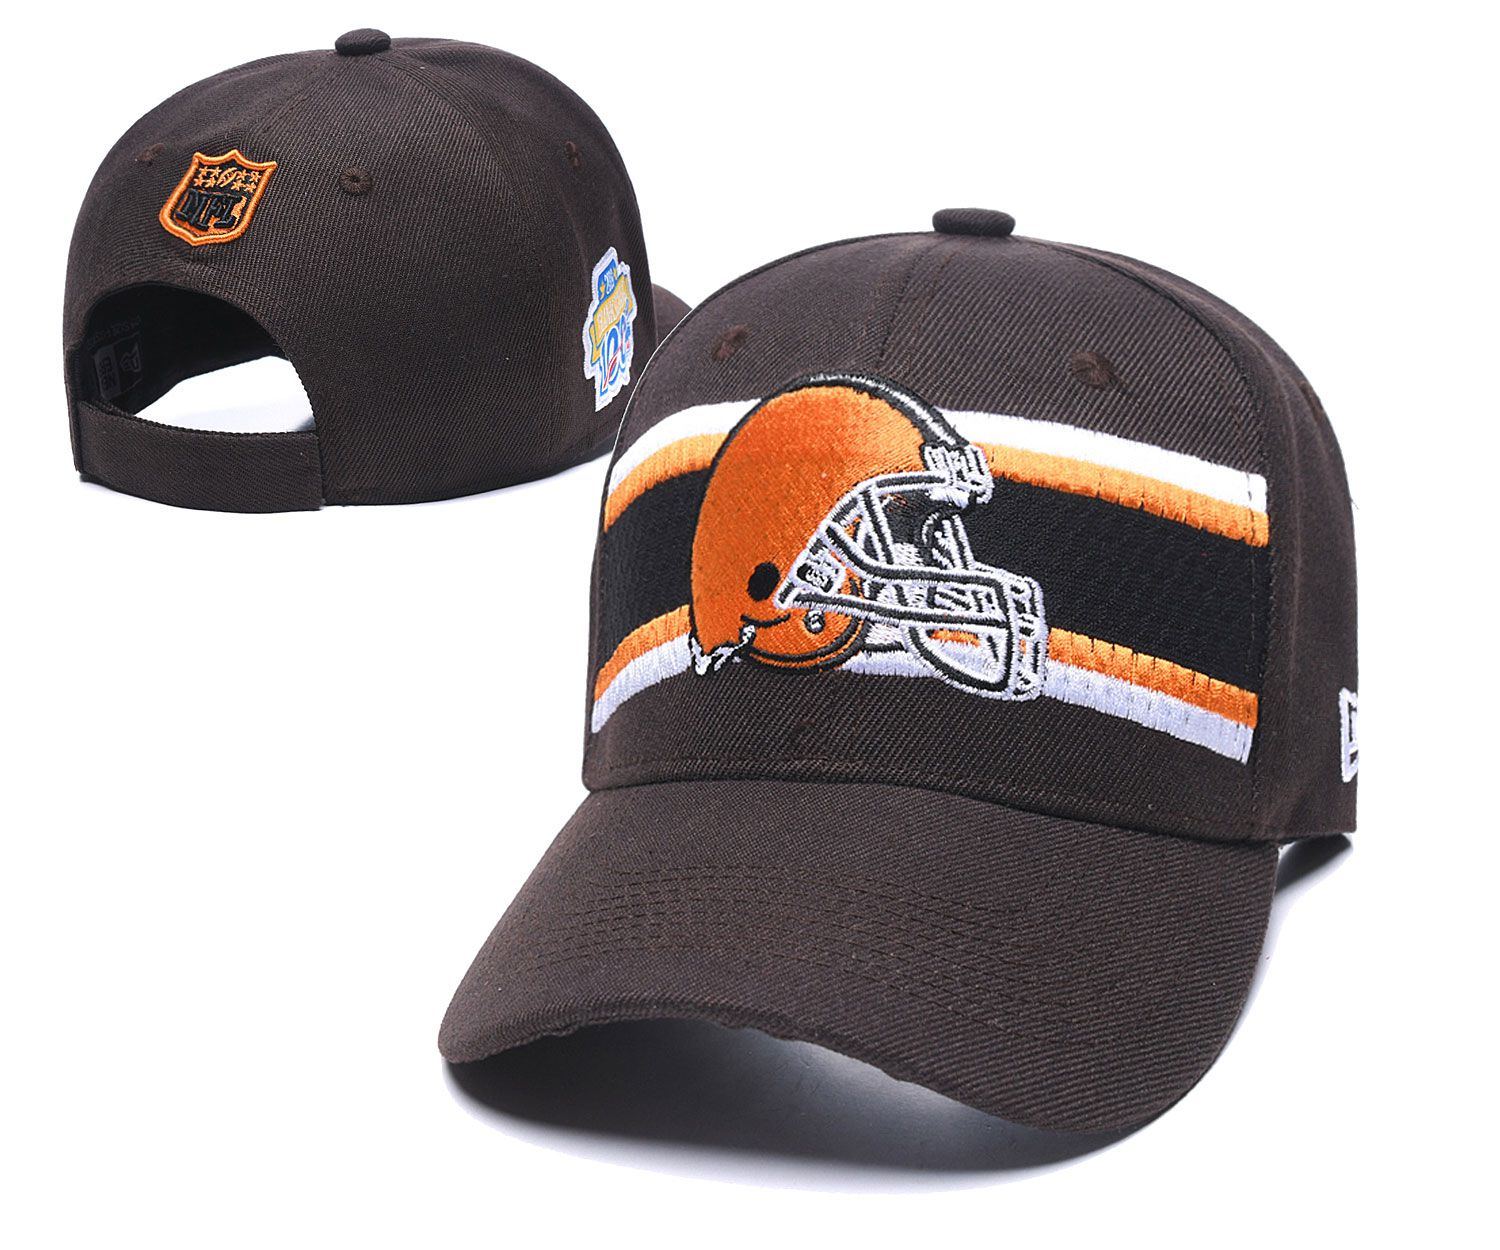 Wholesale 2020 NFL Cleveland Browns Hat 2020915